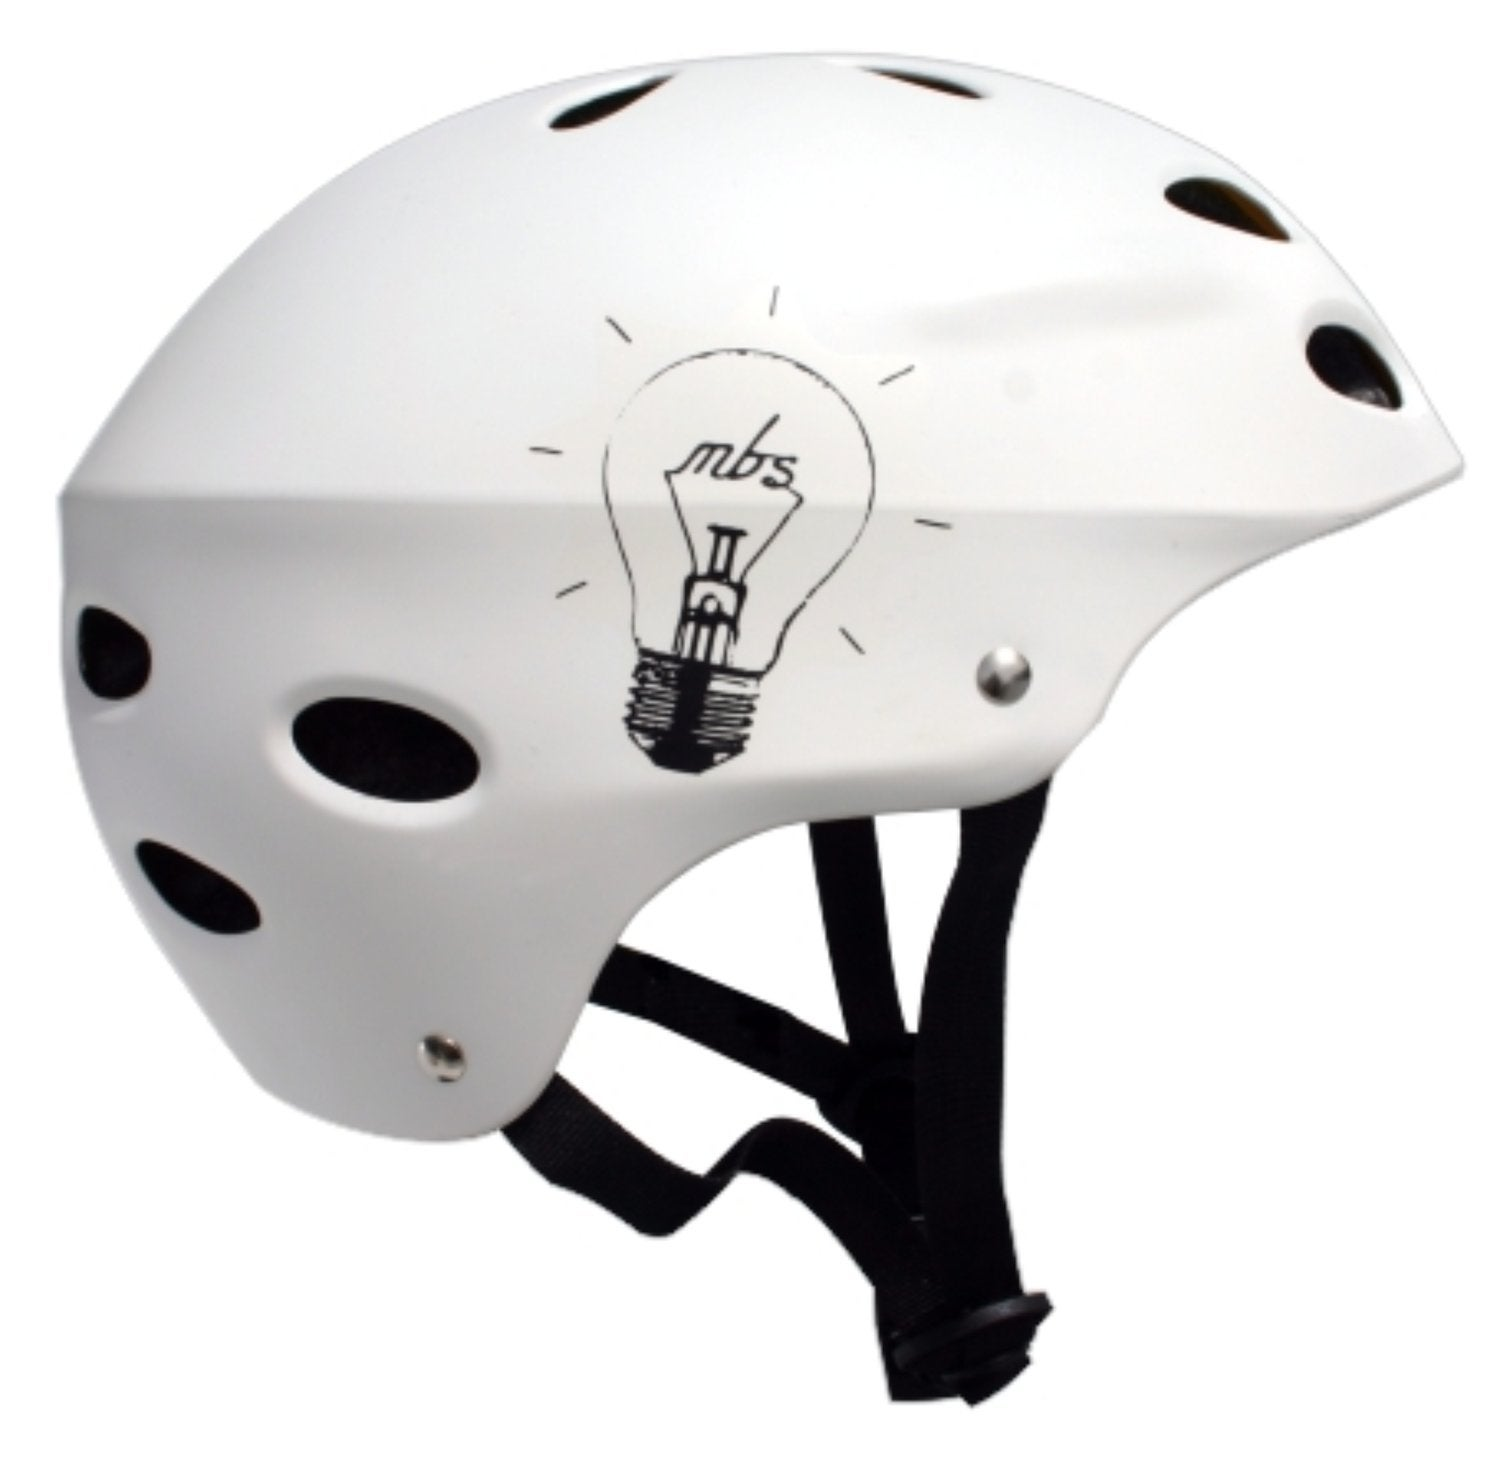 "Image of MBS Helmets - White - ""Bright Idea"""